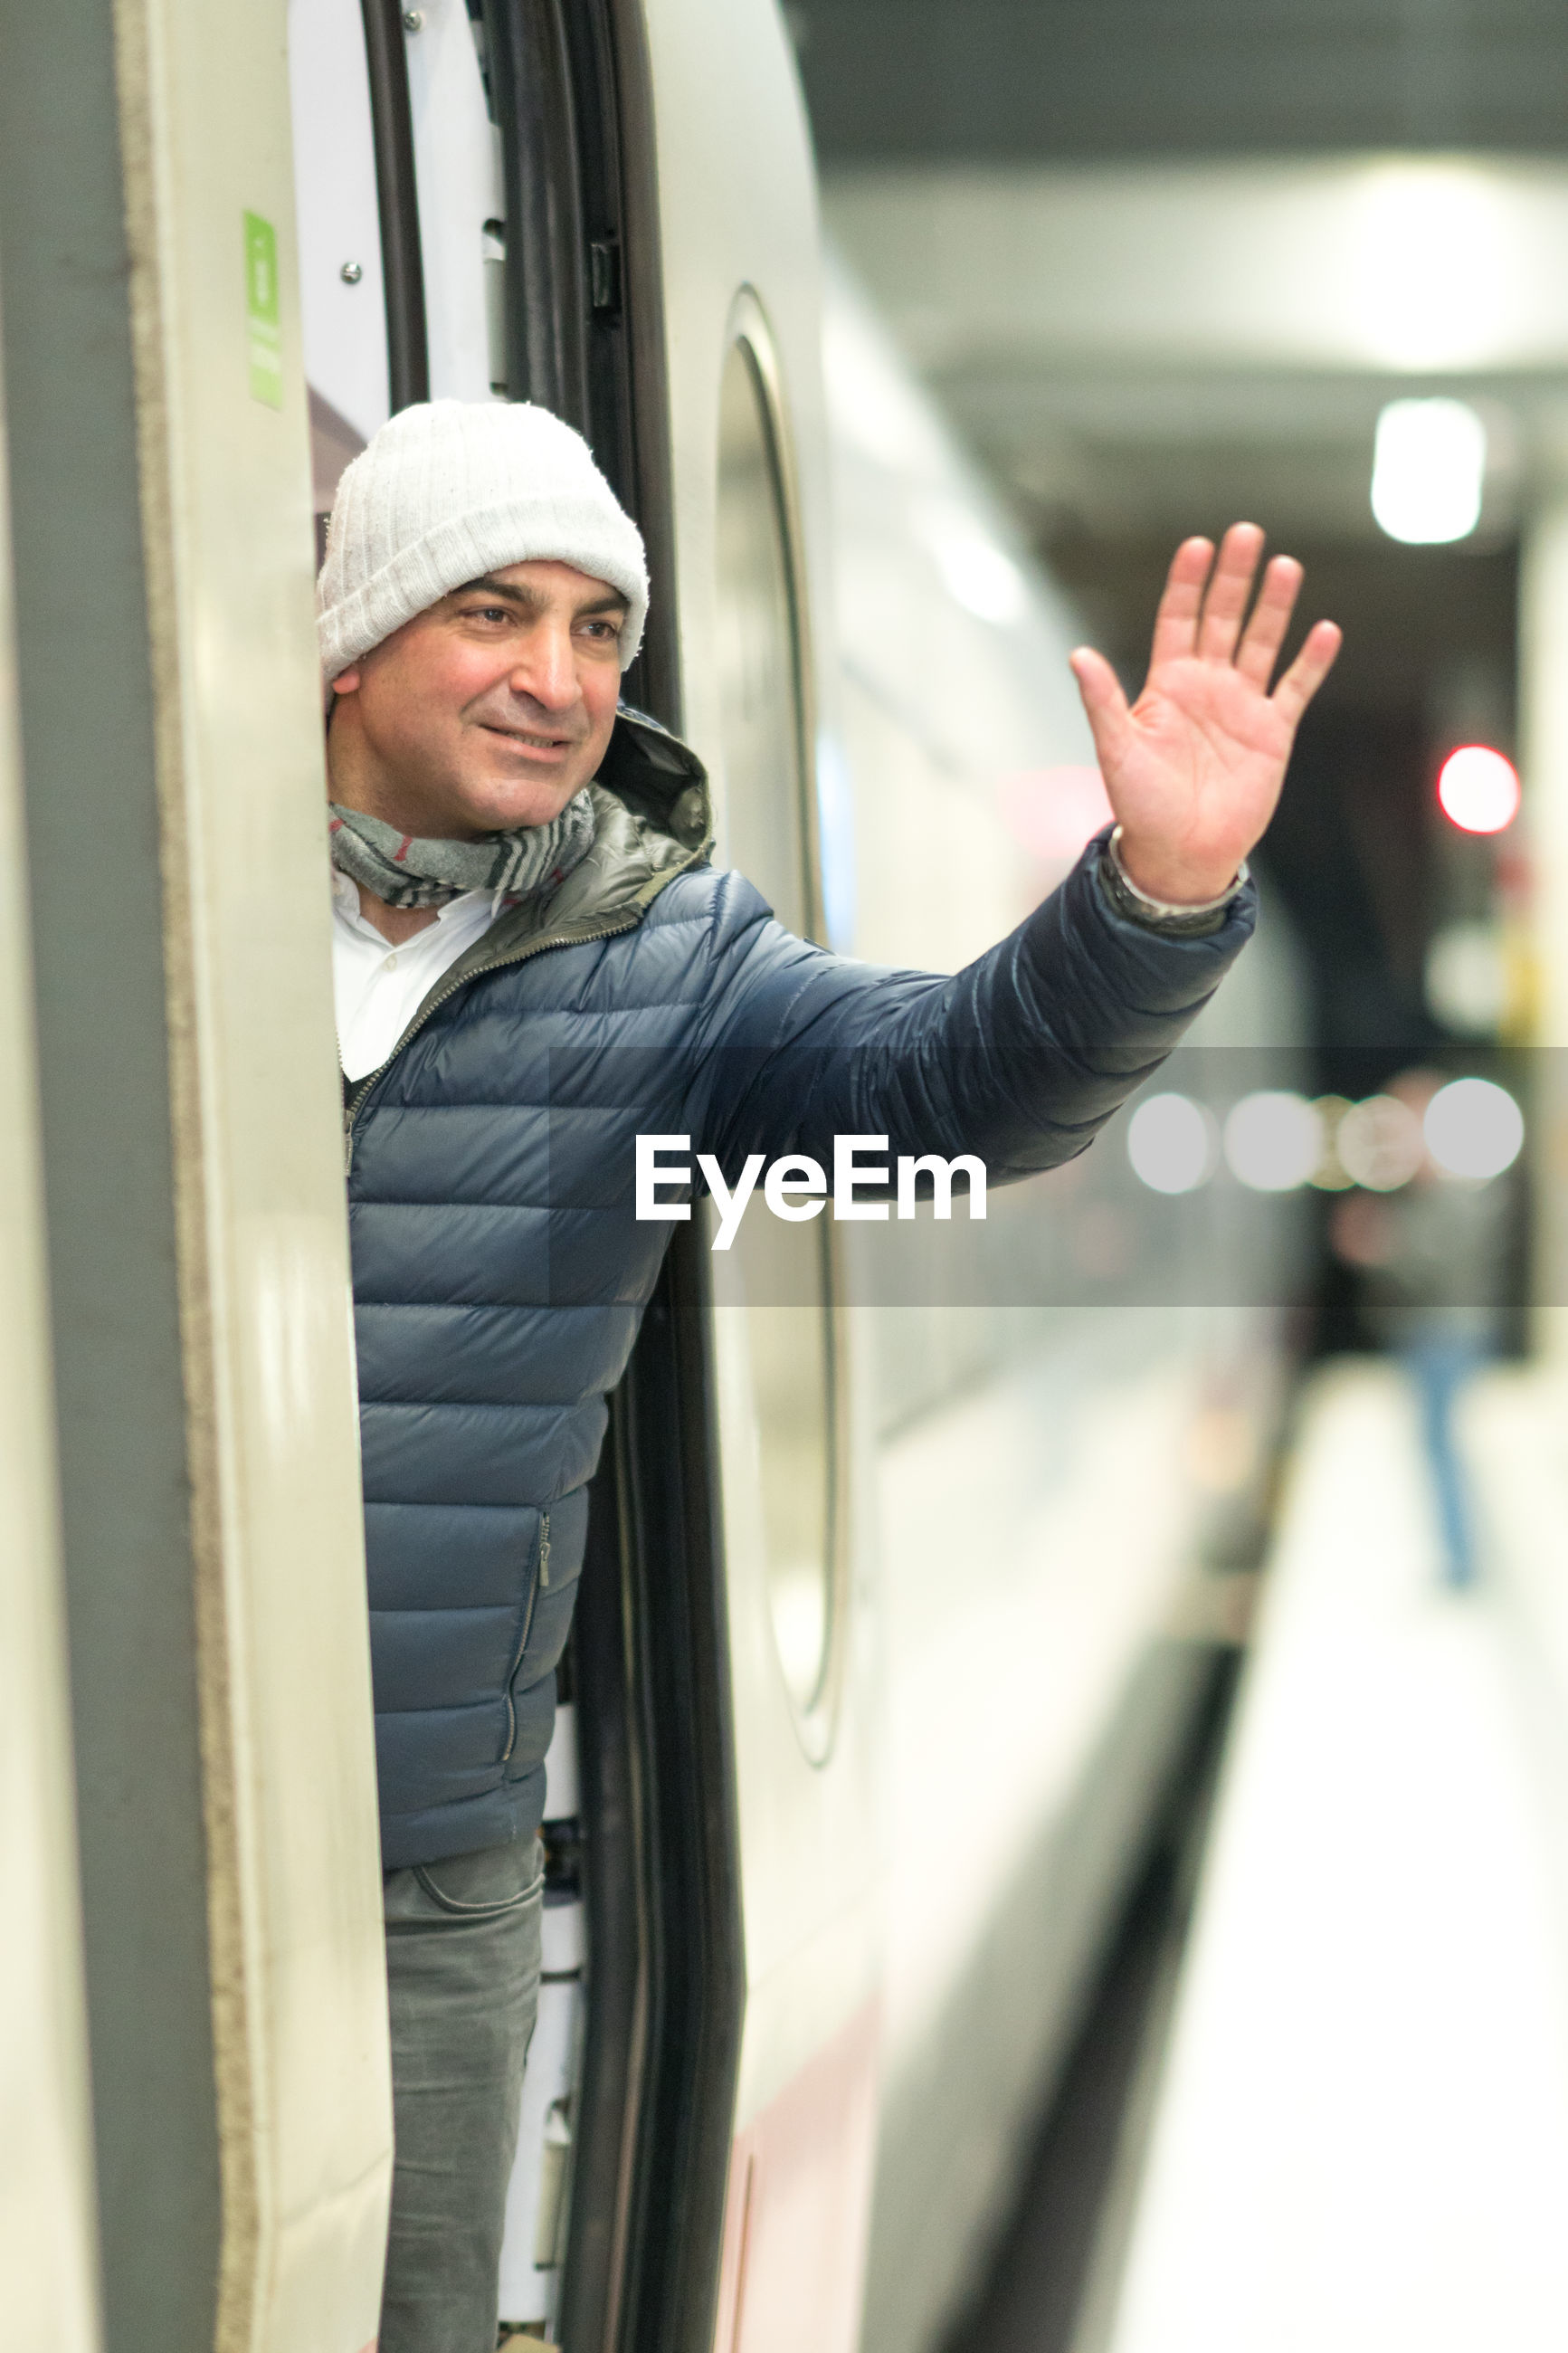 Man waving hand while standing in train